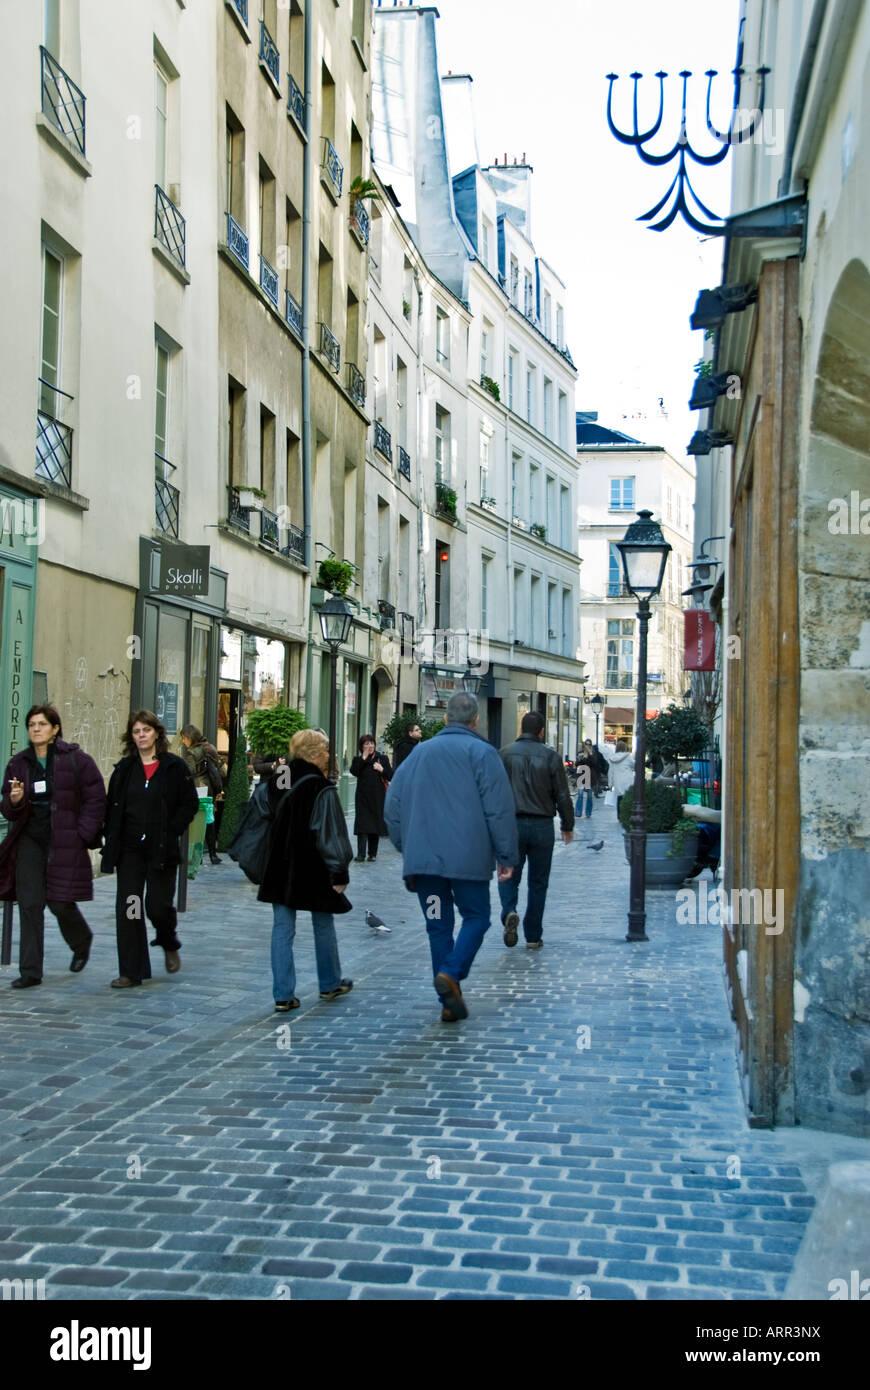 Paris France, 'Street Scene' People Shopping 'rue des Rosiers' 'Jewish Culture' 'Cobbled - Stock Image